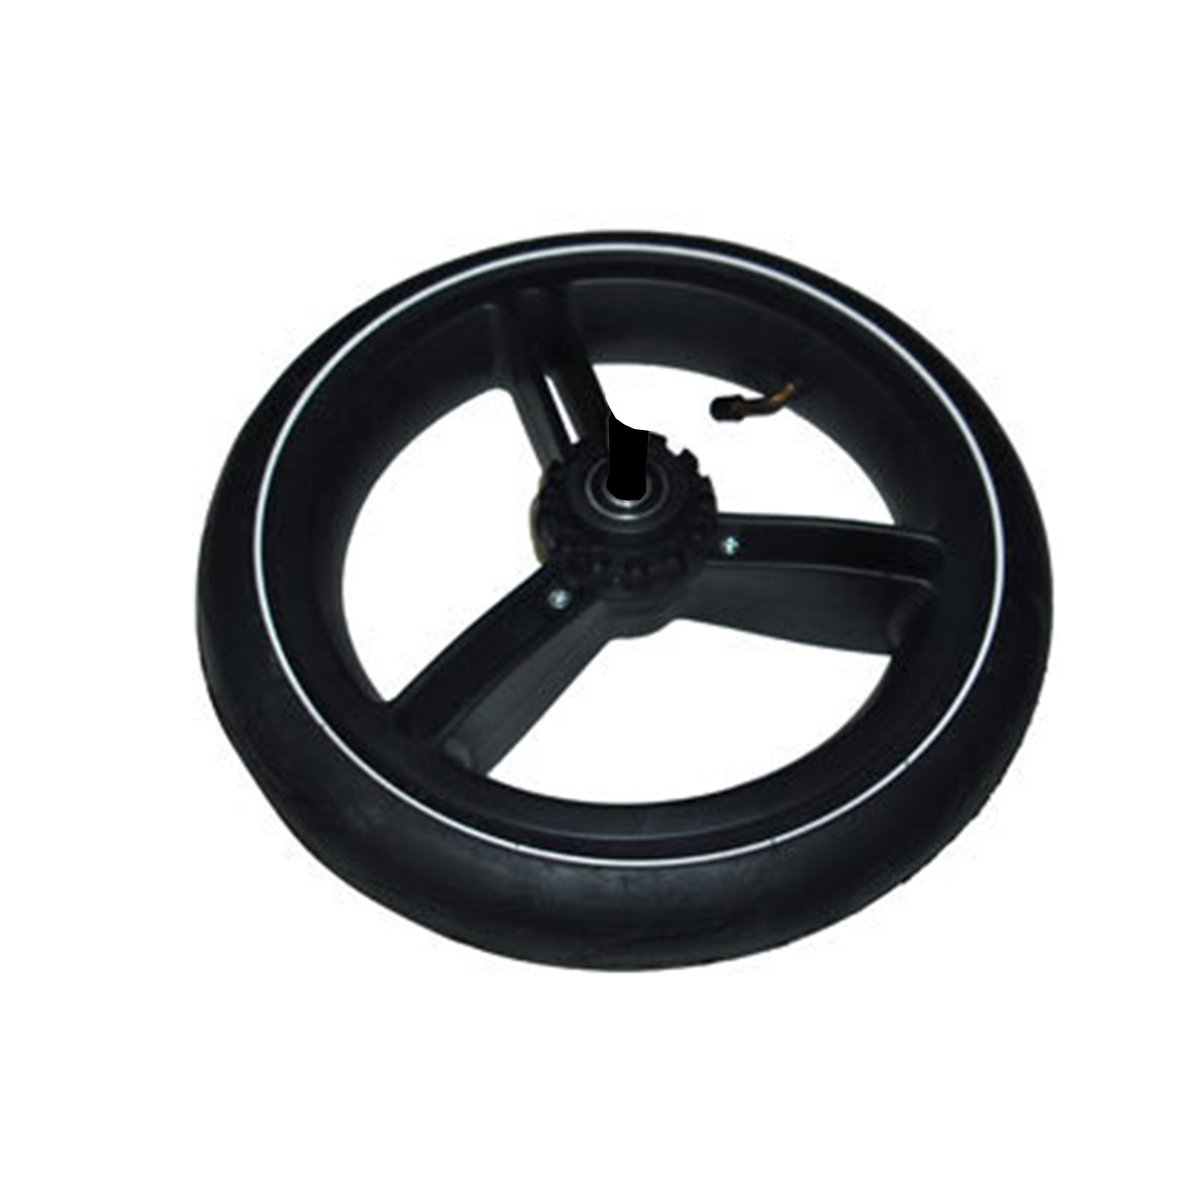 Phil & Teds Vibe and Verve Complete Rear Wheel (Wheel, Tire, and Inner Tube - Axle Not Included)